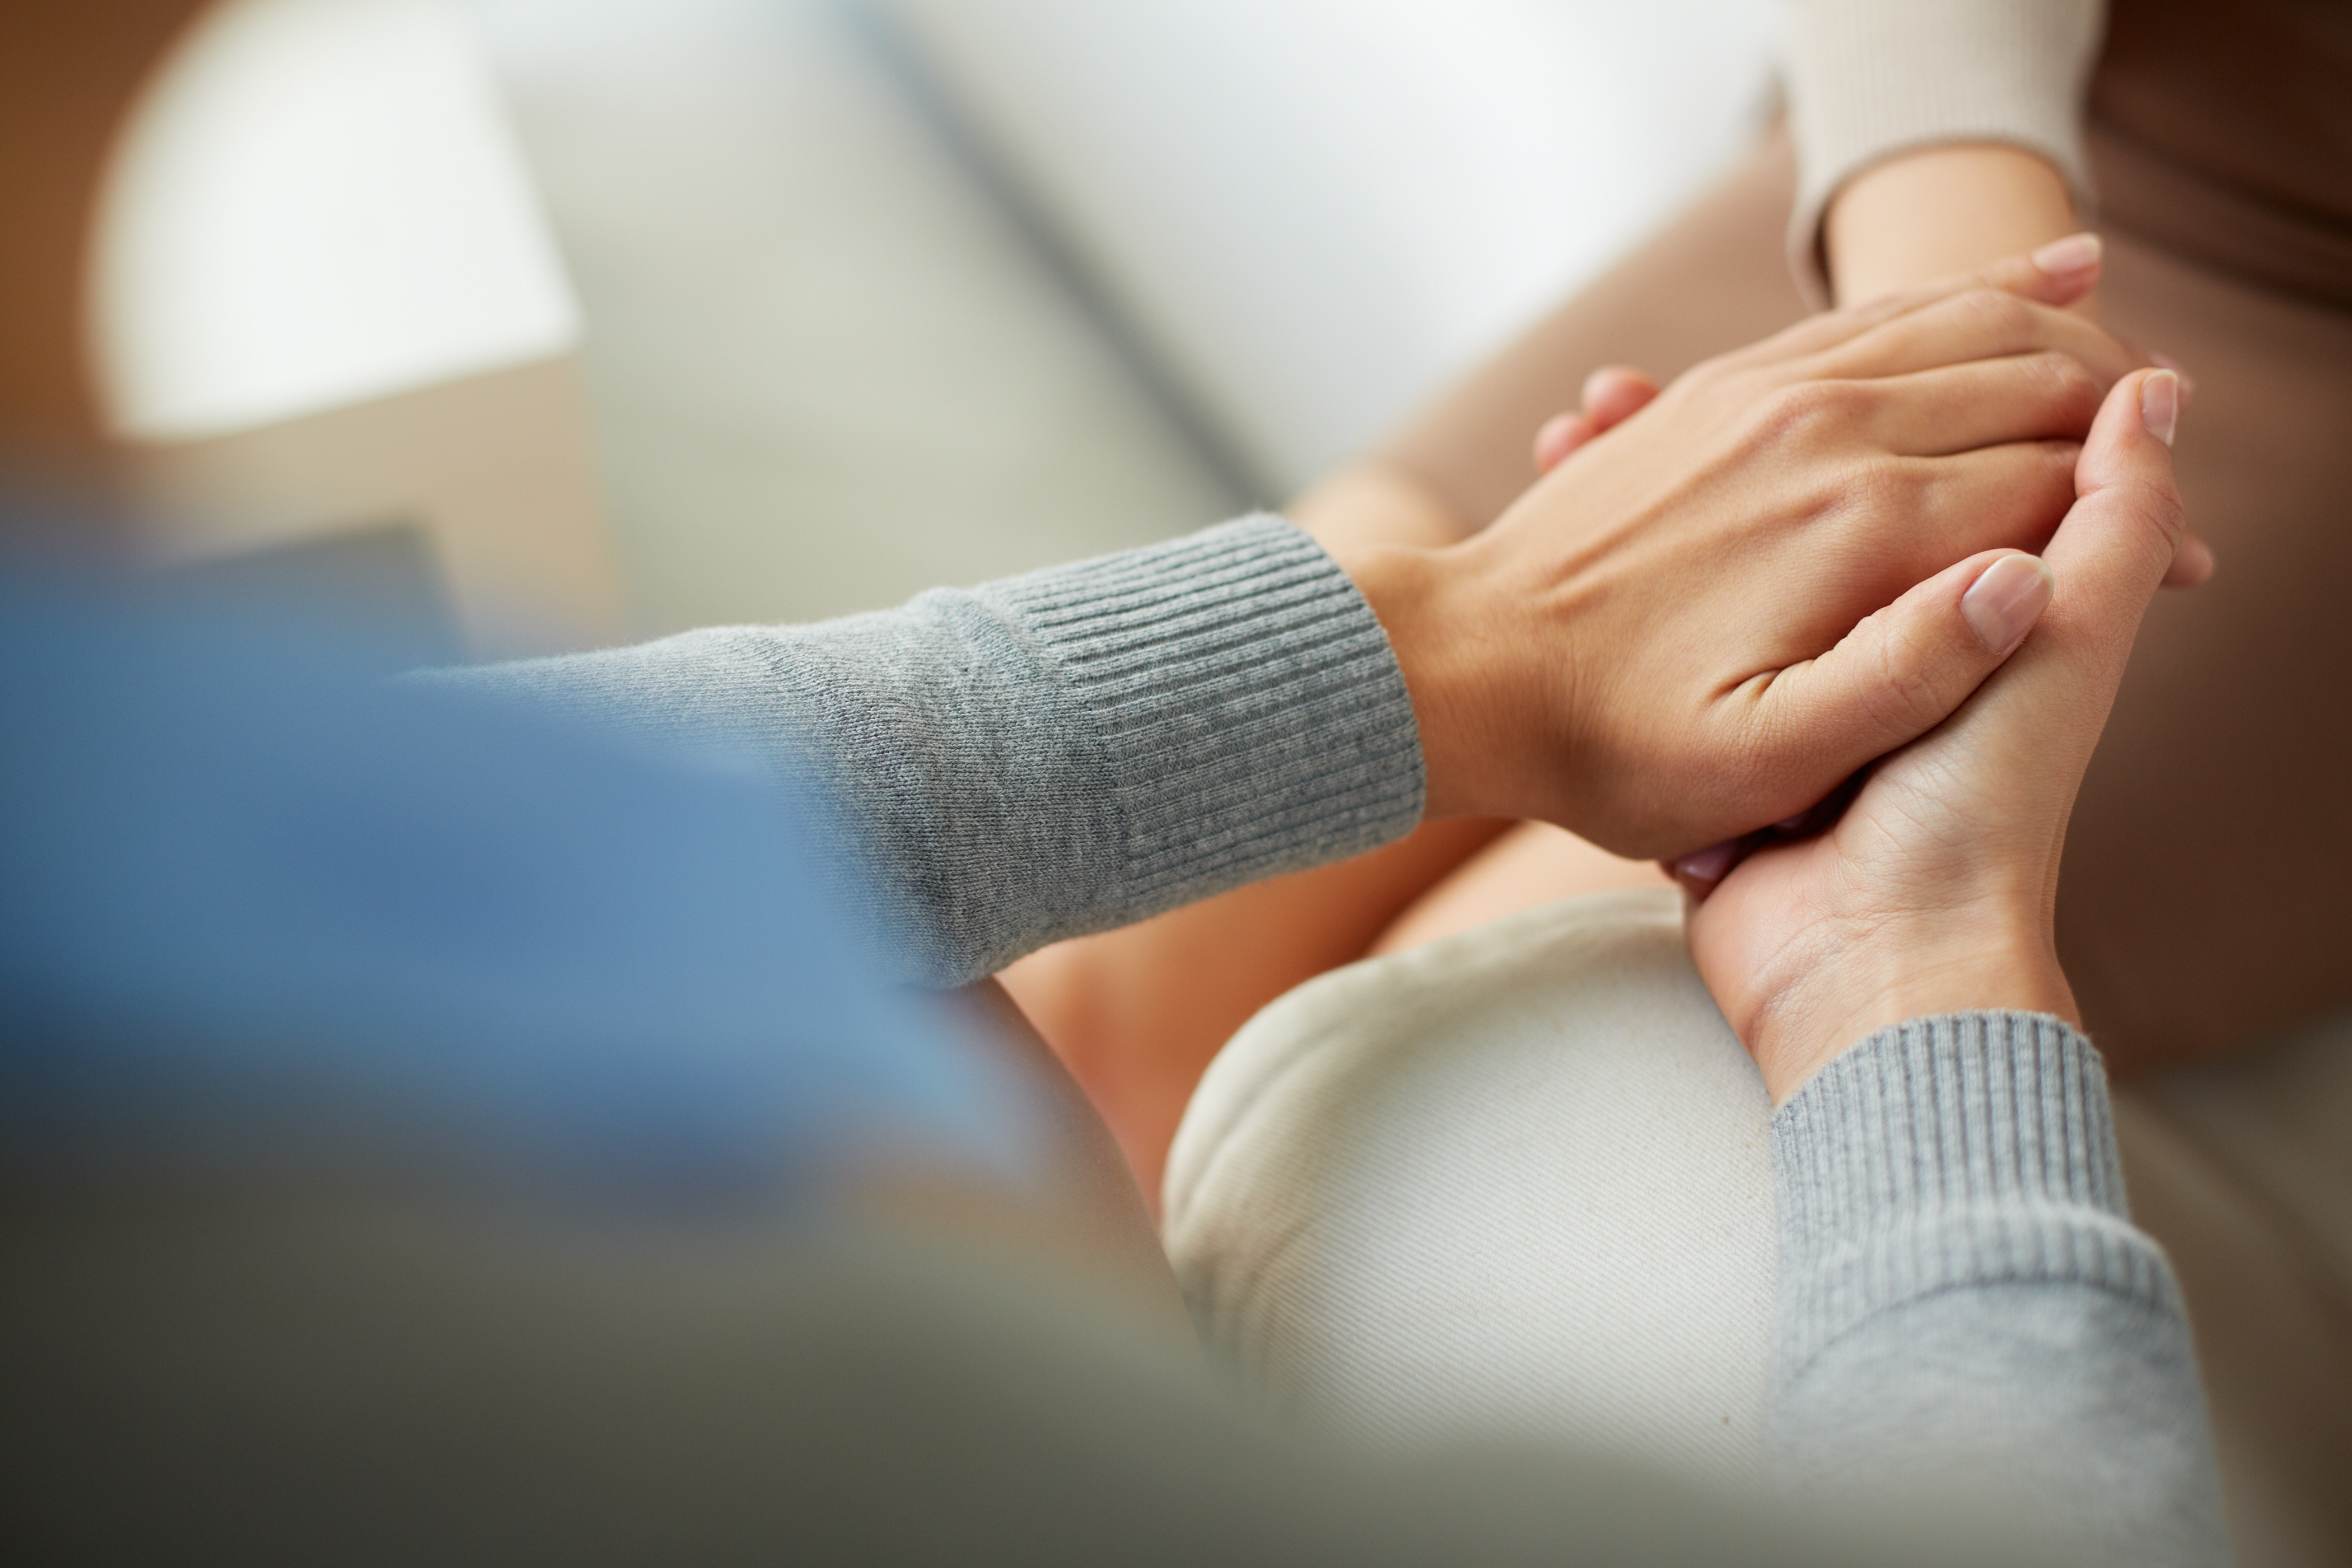 For some, counseling can be a guidance to a life changing event.